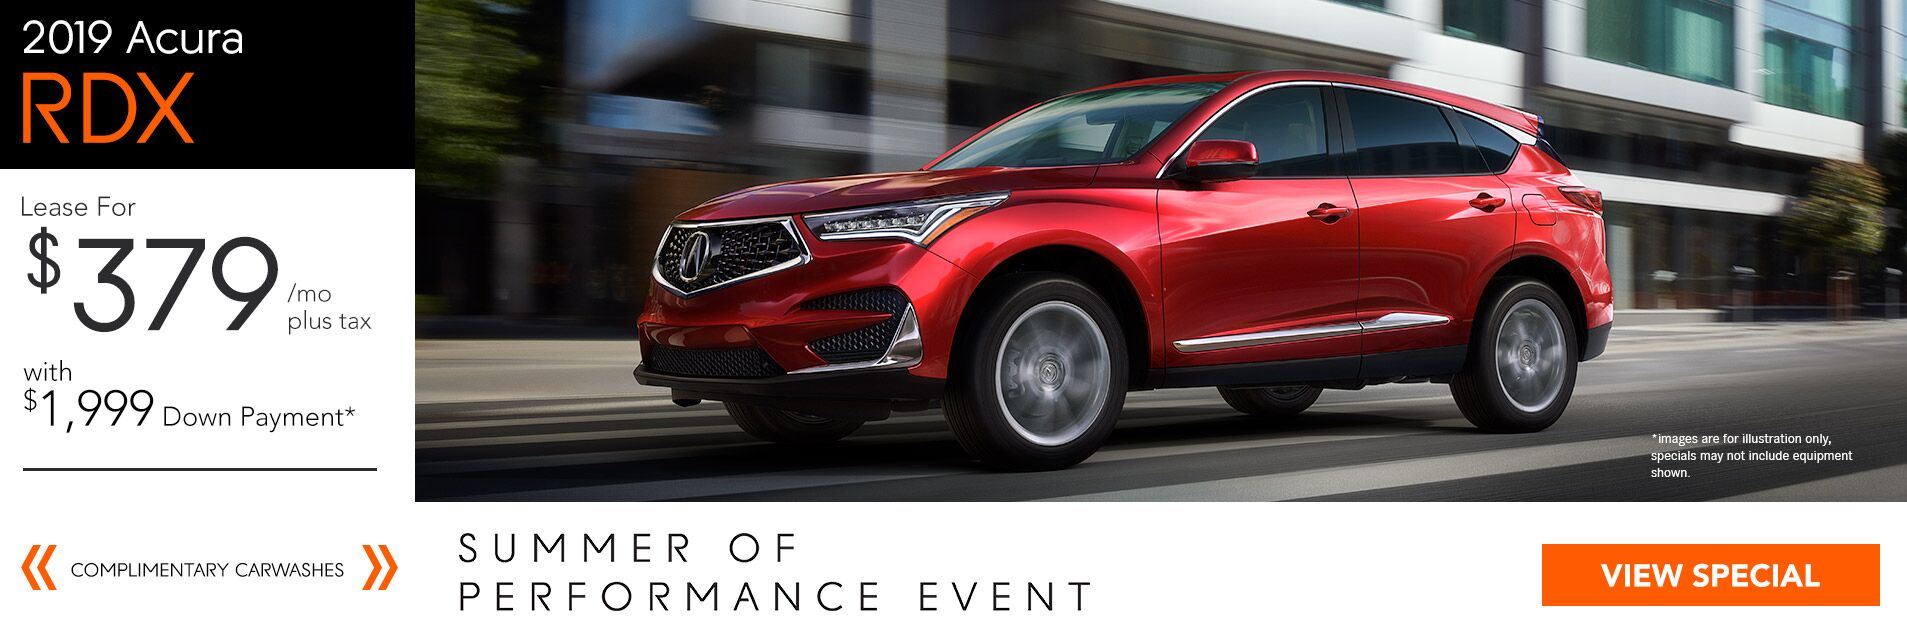 2019 Acura RDX for $379/36Mo. with $1,999 Down